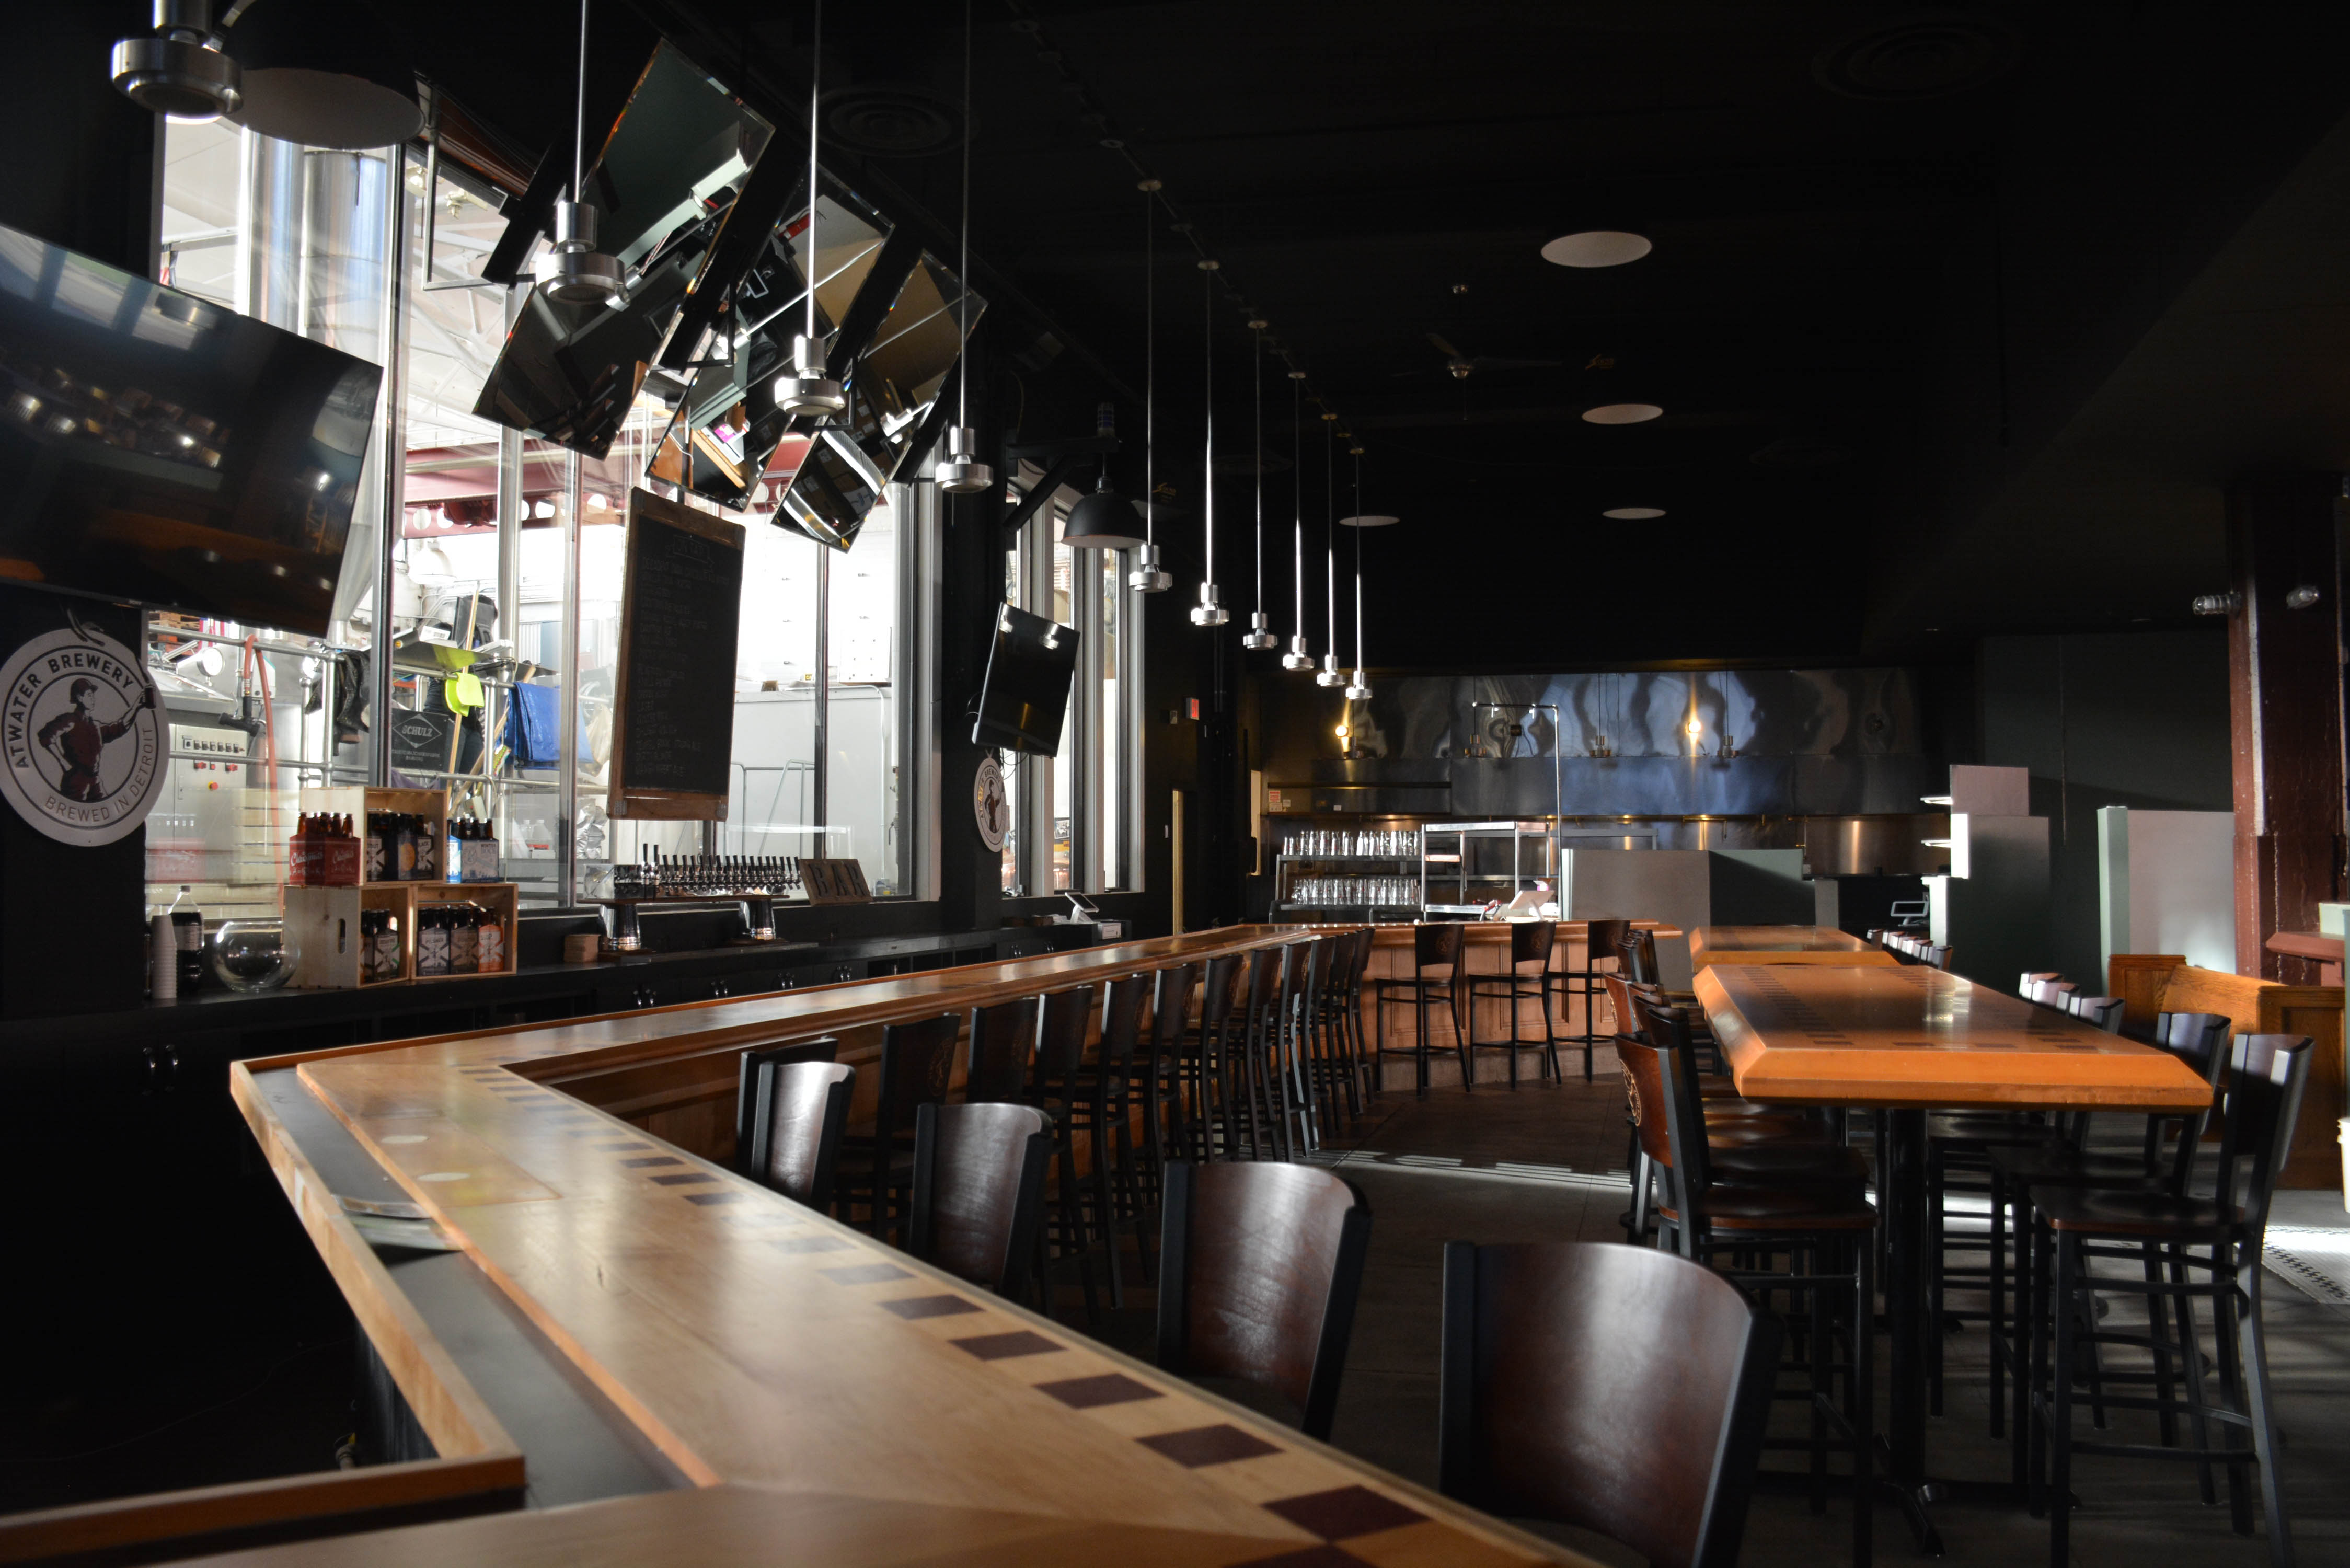 Atwater's new restaurant expansion is set to open in the former Tangerine space on Jos Campau.